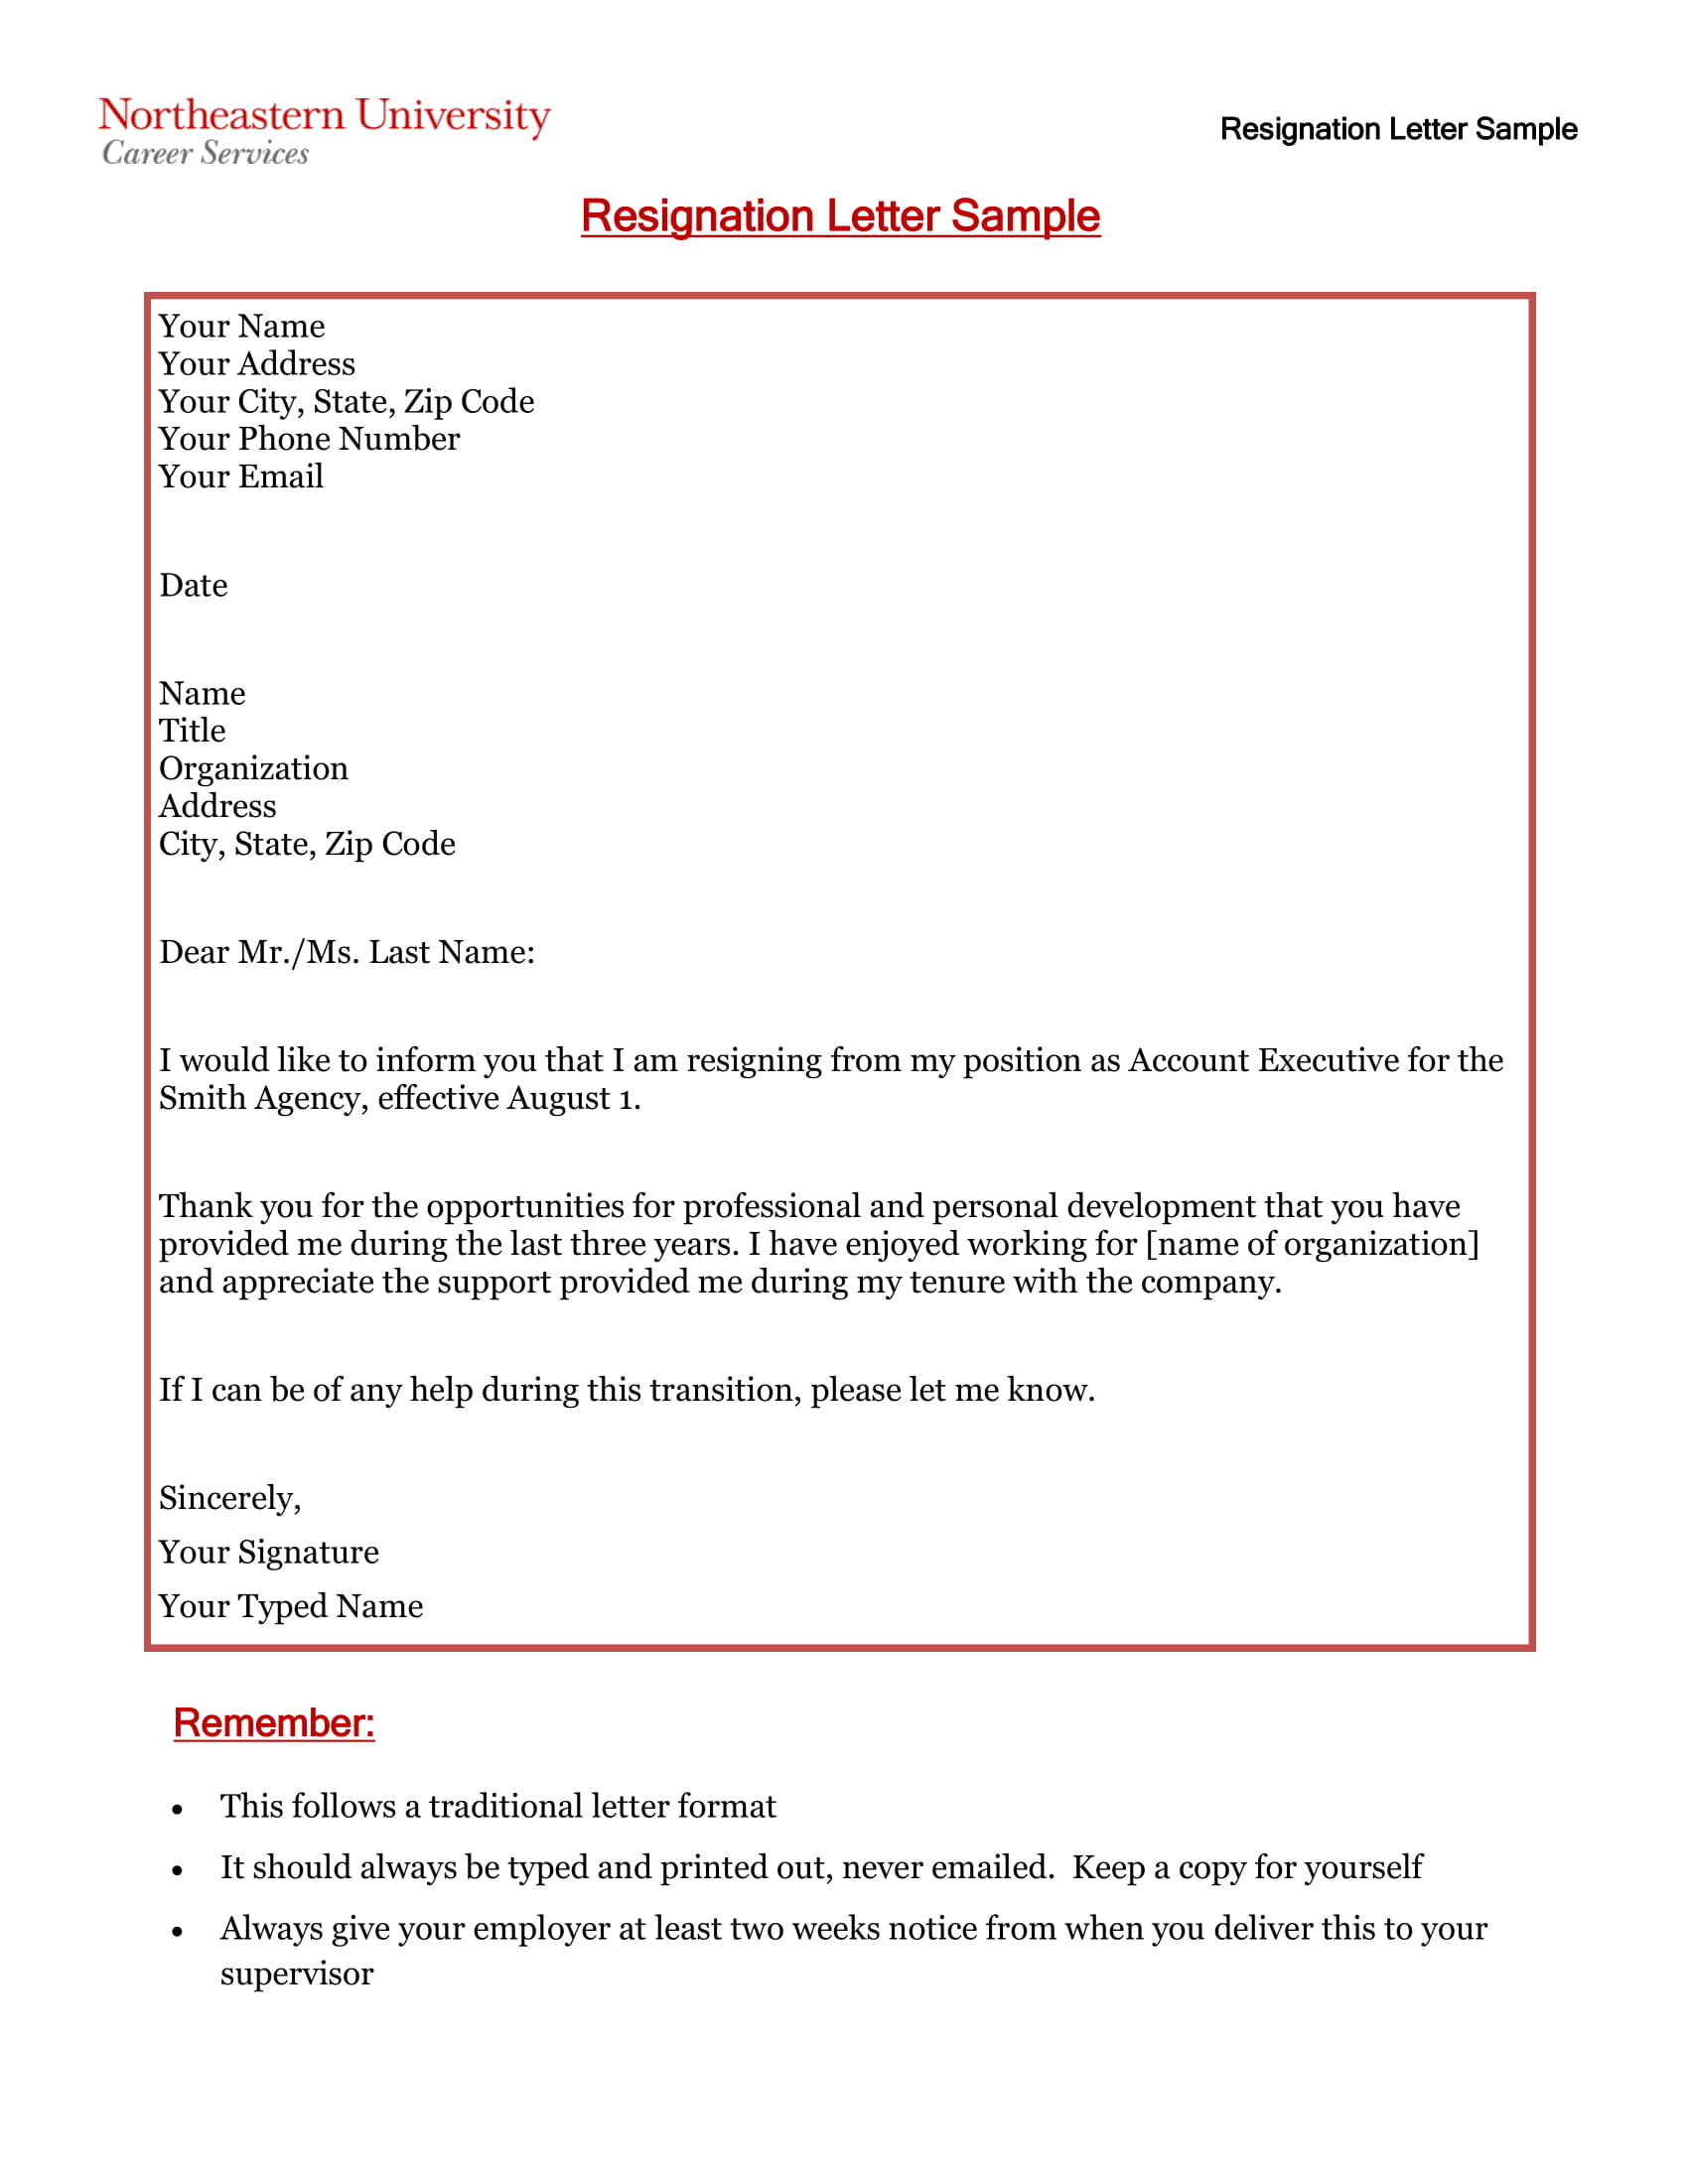 17 letter format examples pdf resignation letter example thecheapjerseys Gallery